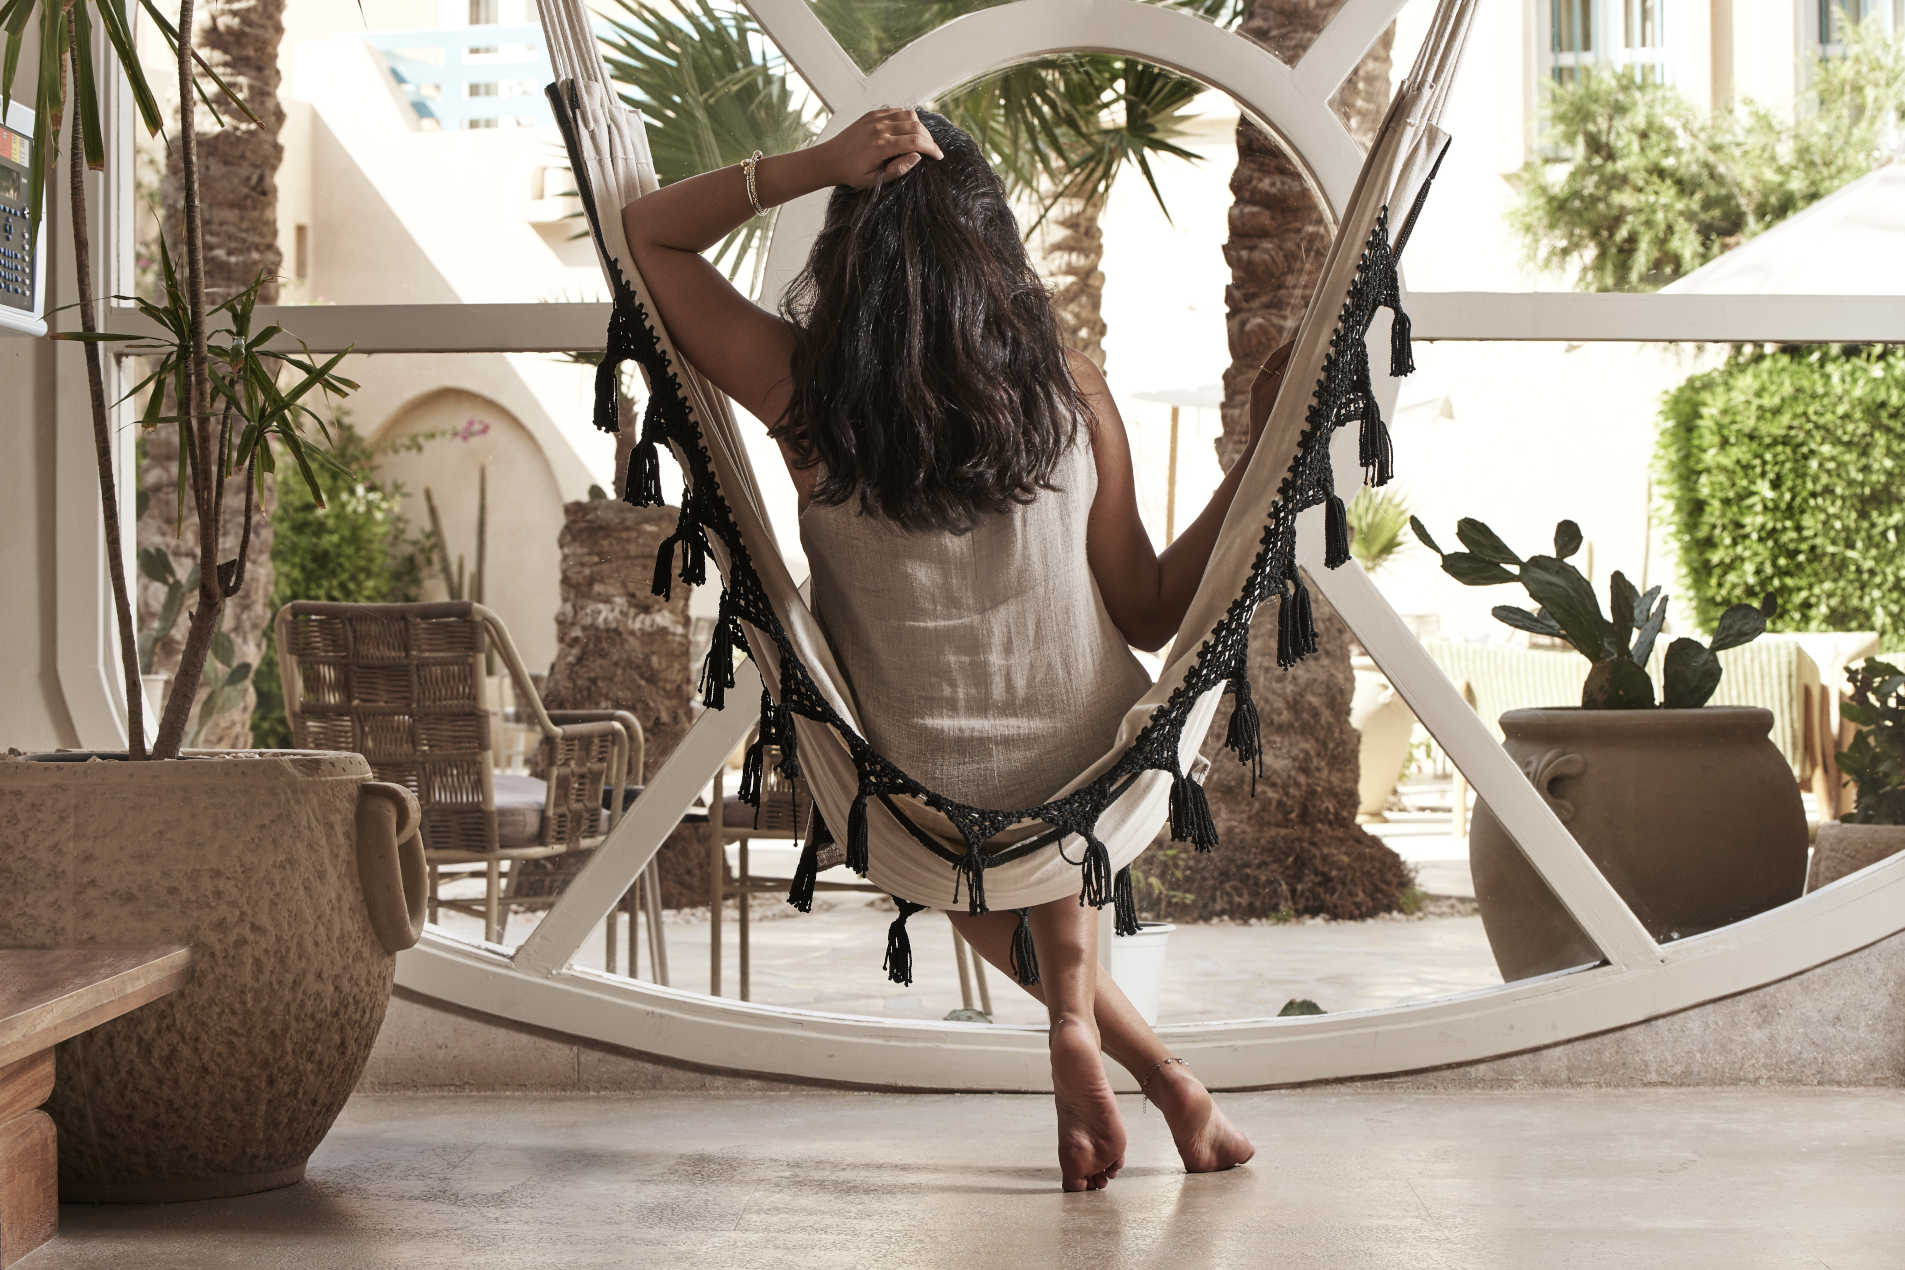 A female guest relaxing on a hammock in the Captain's Inn El Gouna Hotel lobby while looking at the Hotel's courtyard plants